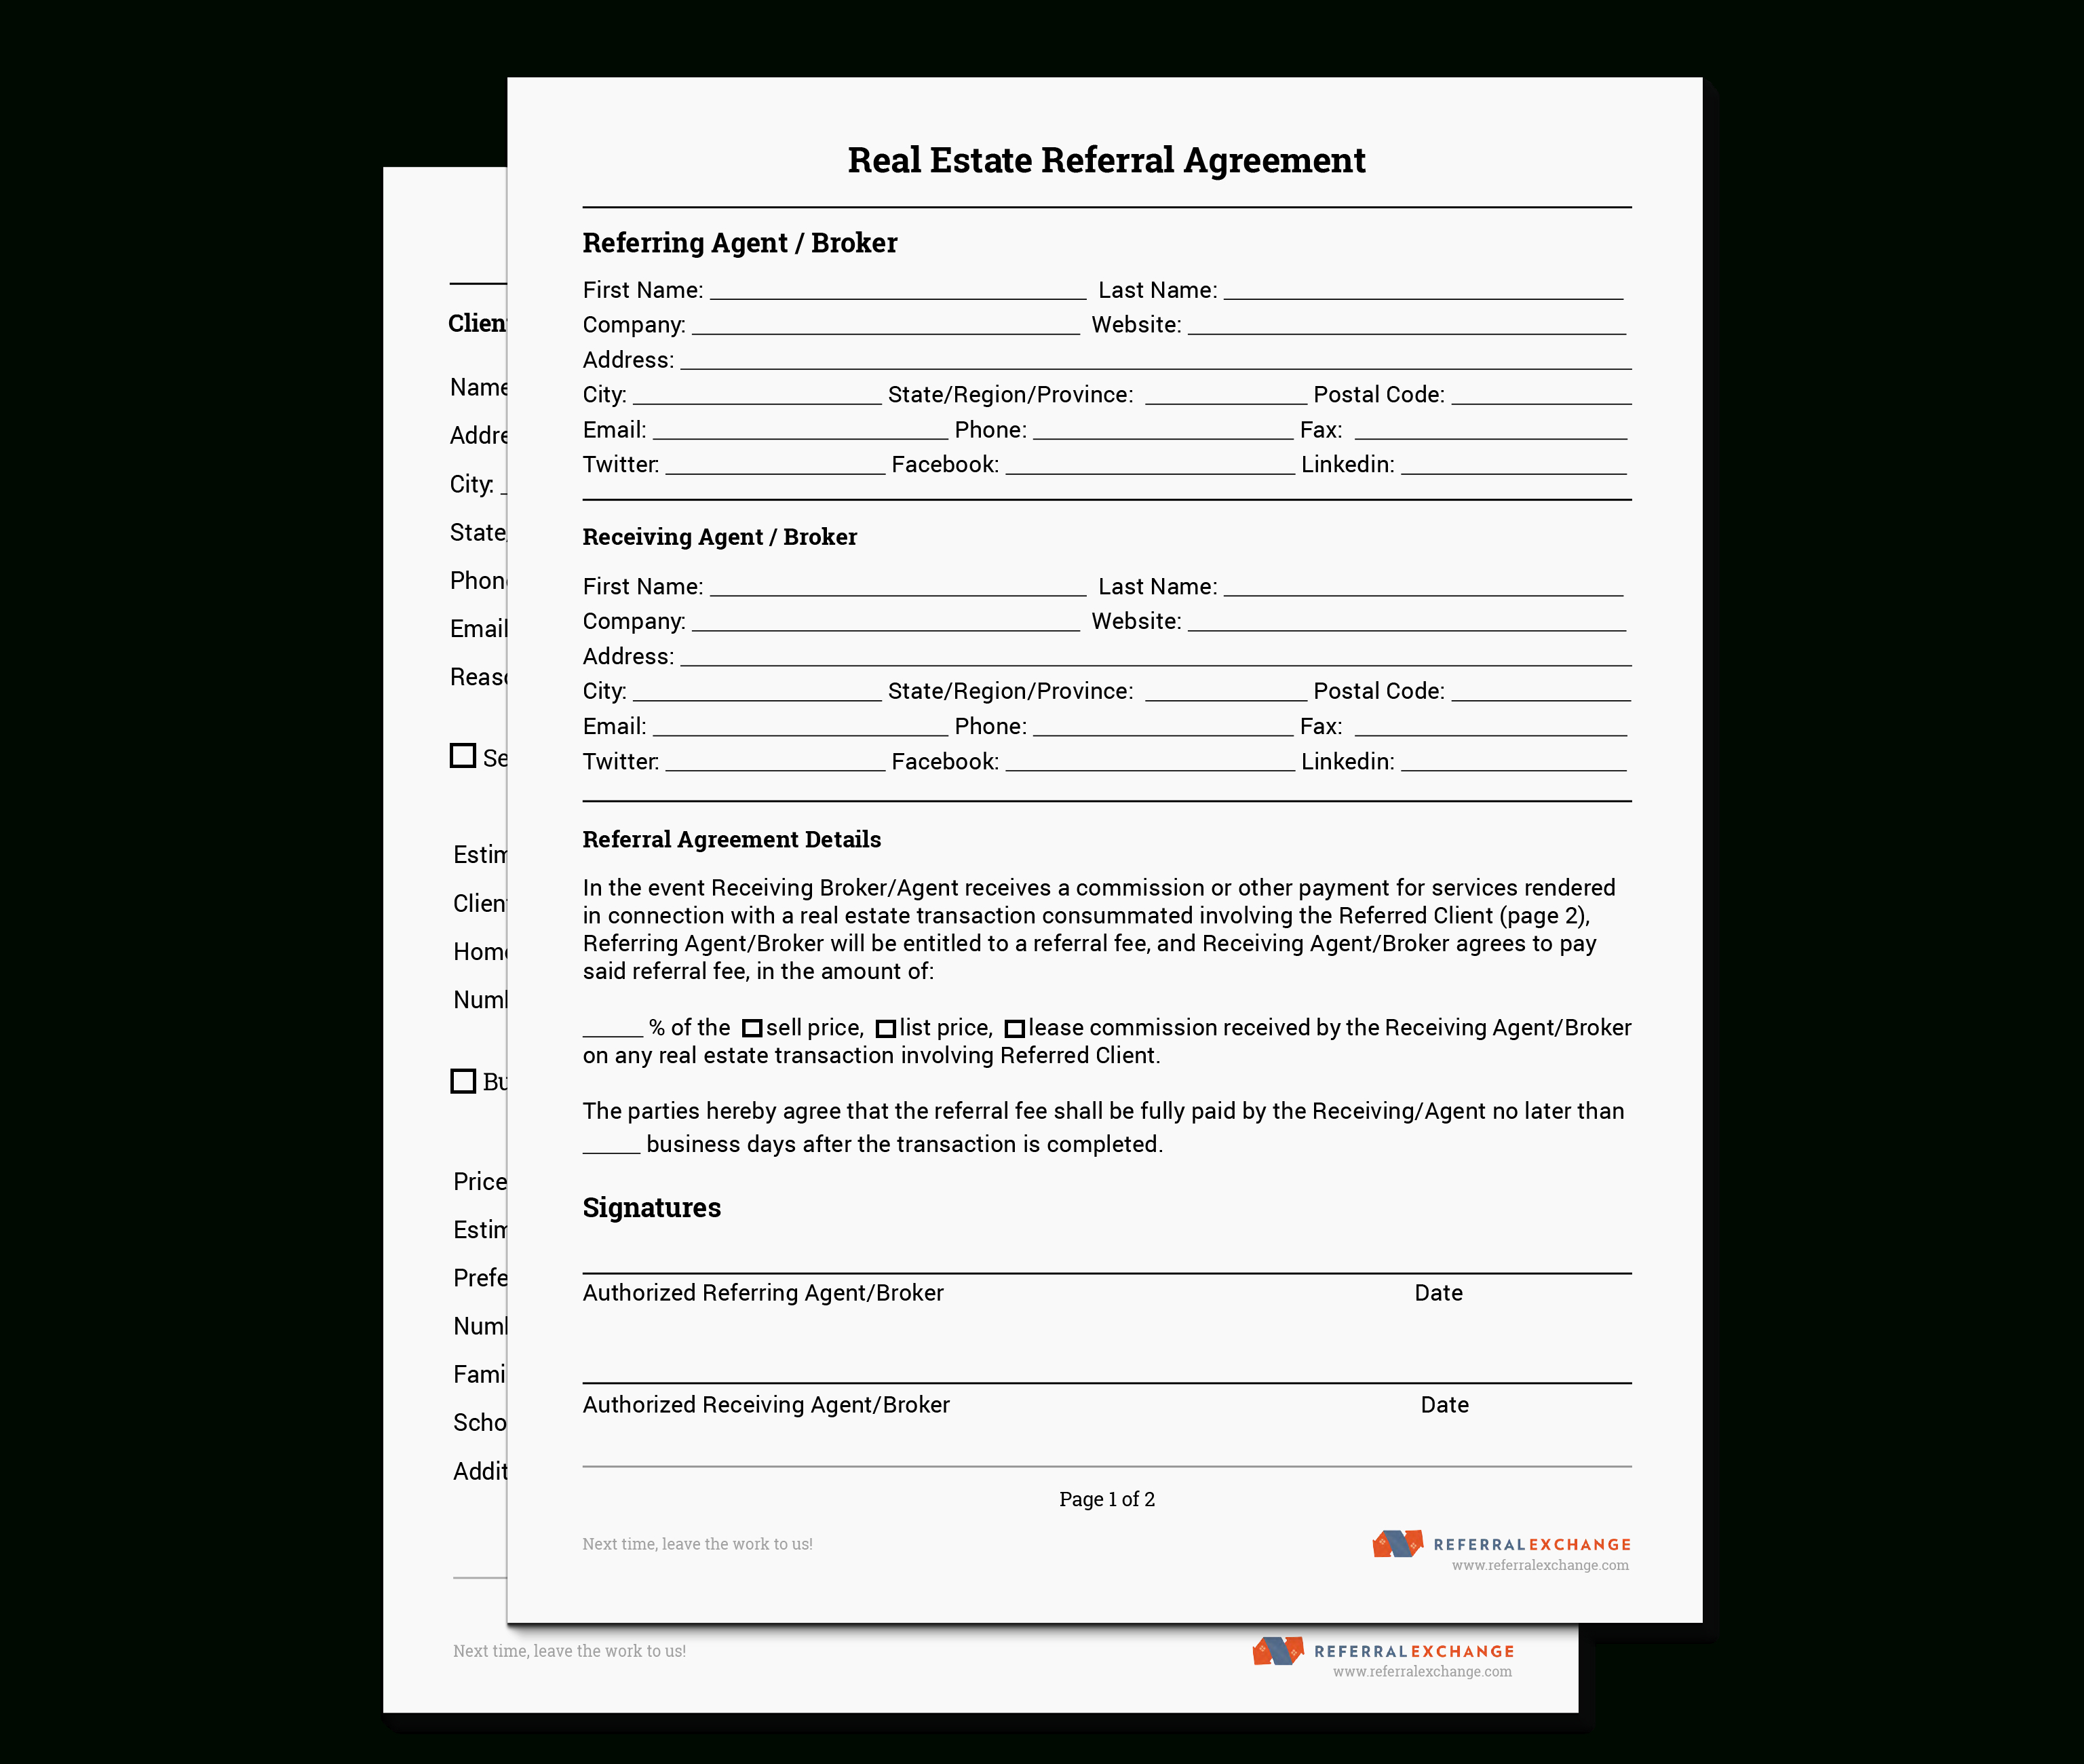 Realtor® Referral Form | Free Download | Referralexchange - Free Printable Real Estate Forms